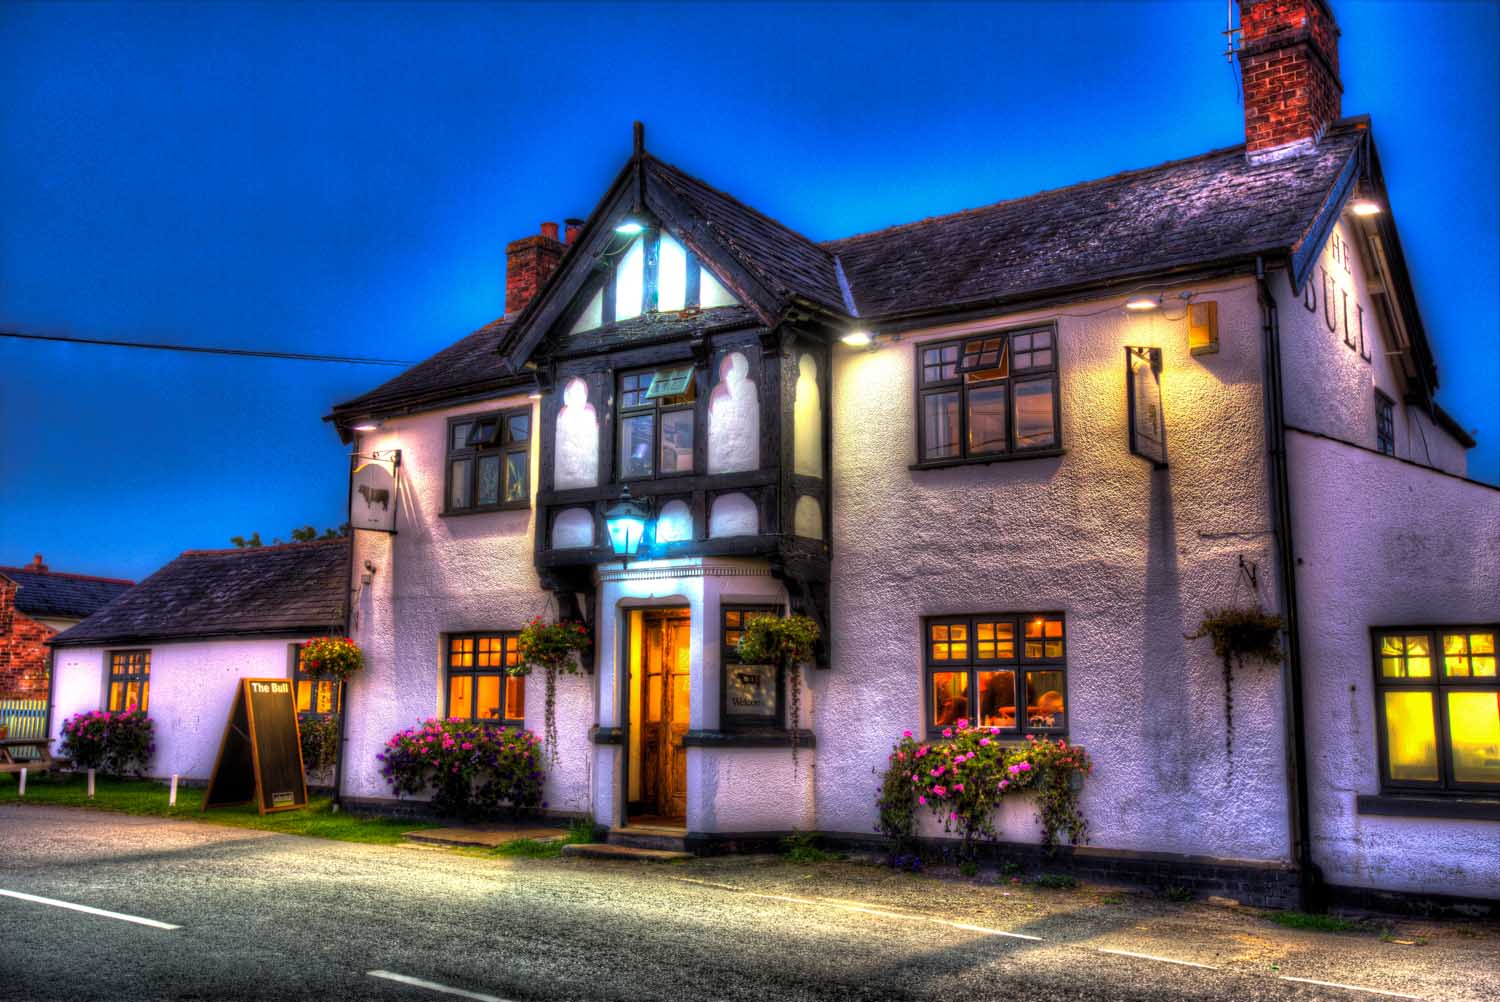 Village of Shocklach, Cheshire, England. Artistic evening view of the Bull Inn public house in the Cheshire village of Shocklach.